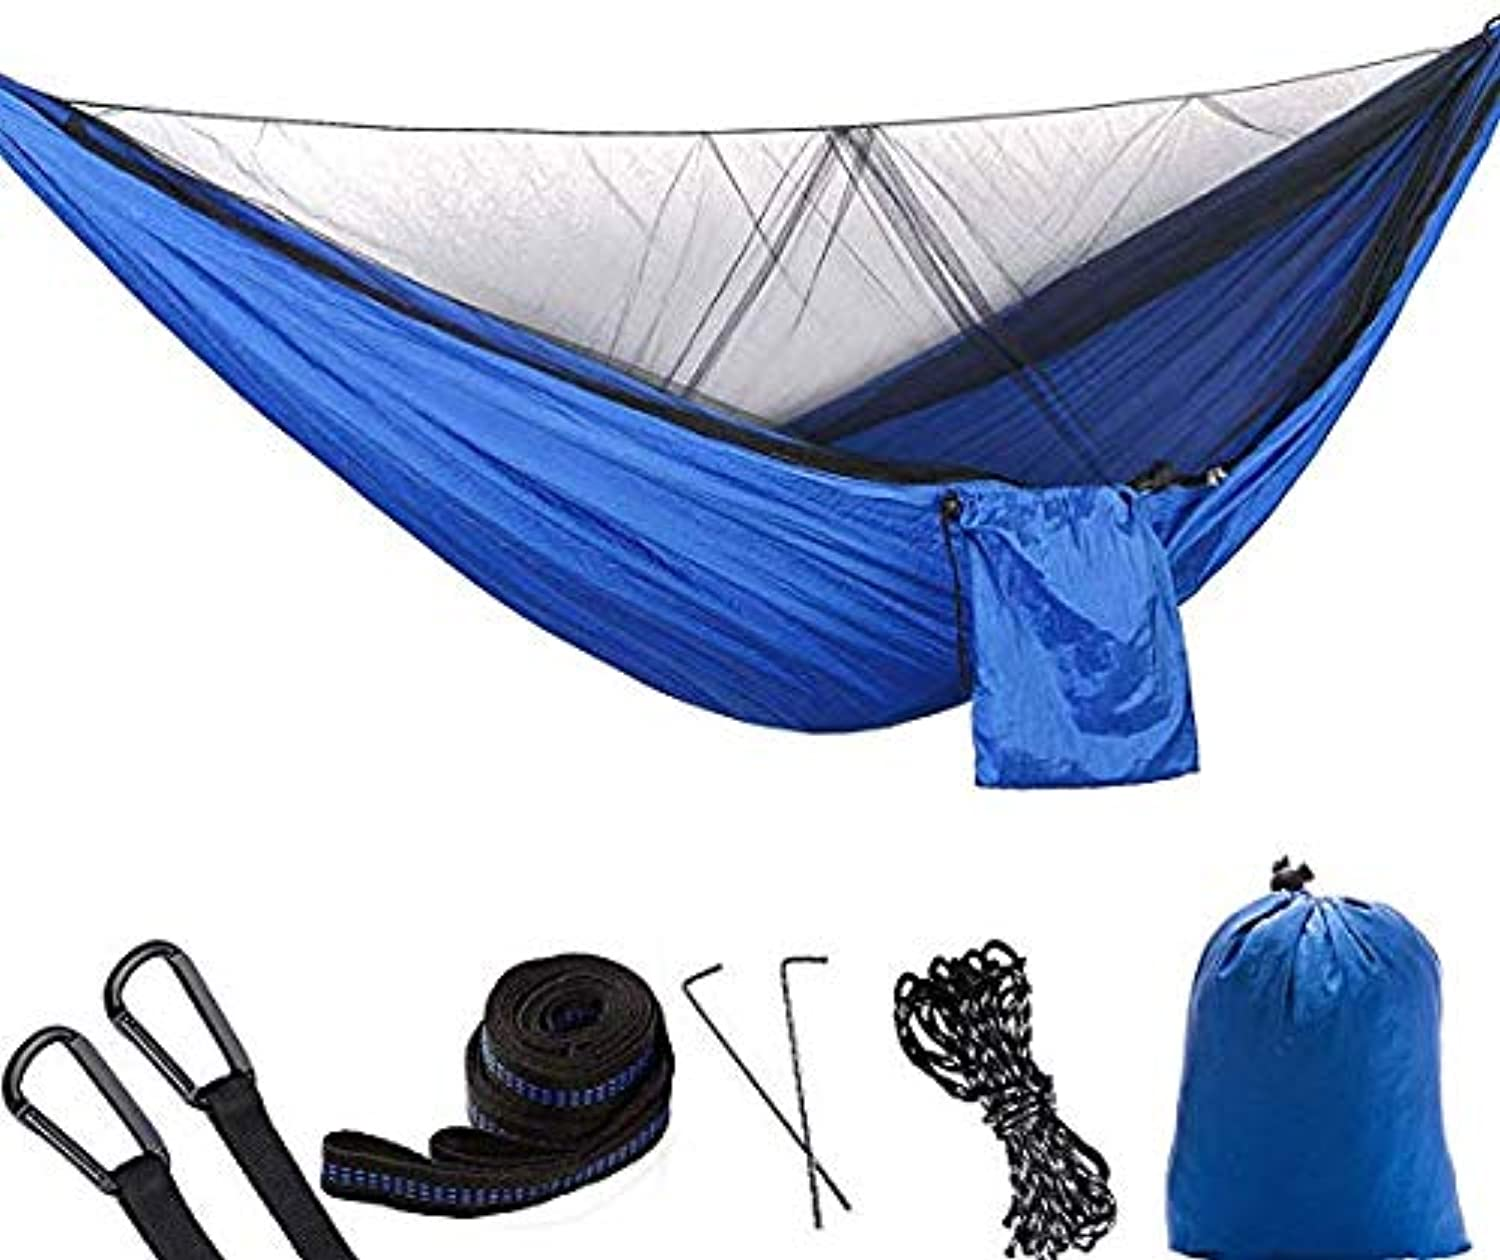 Double Camping Hammock with Mosquito Net,Lightweight Nylon Parachute Portable Hammock for Indoor, Camping, Hiking, Backpacking, Backyard